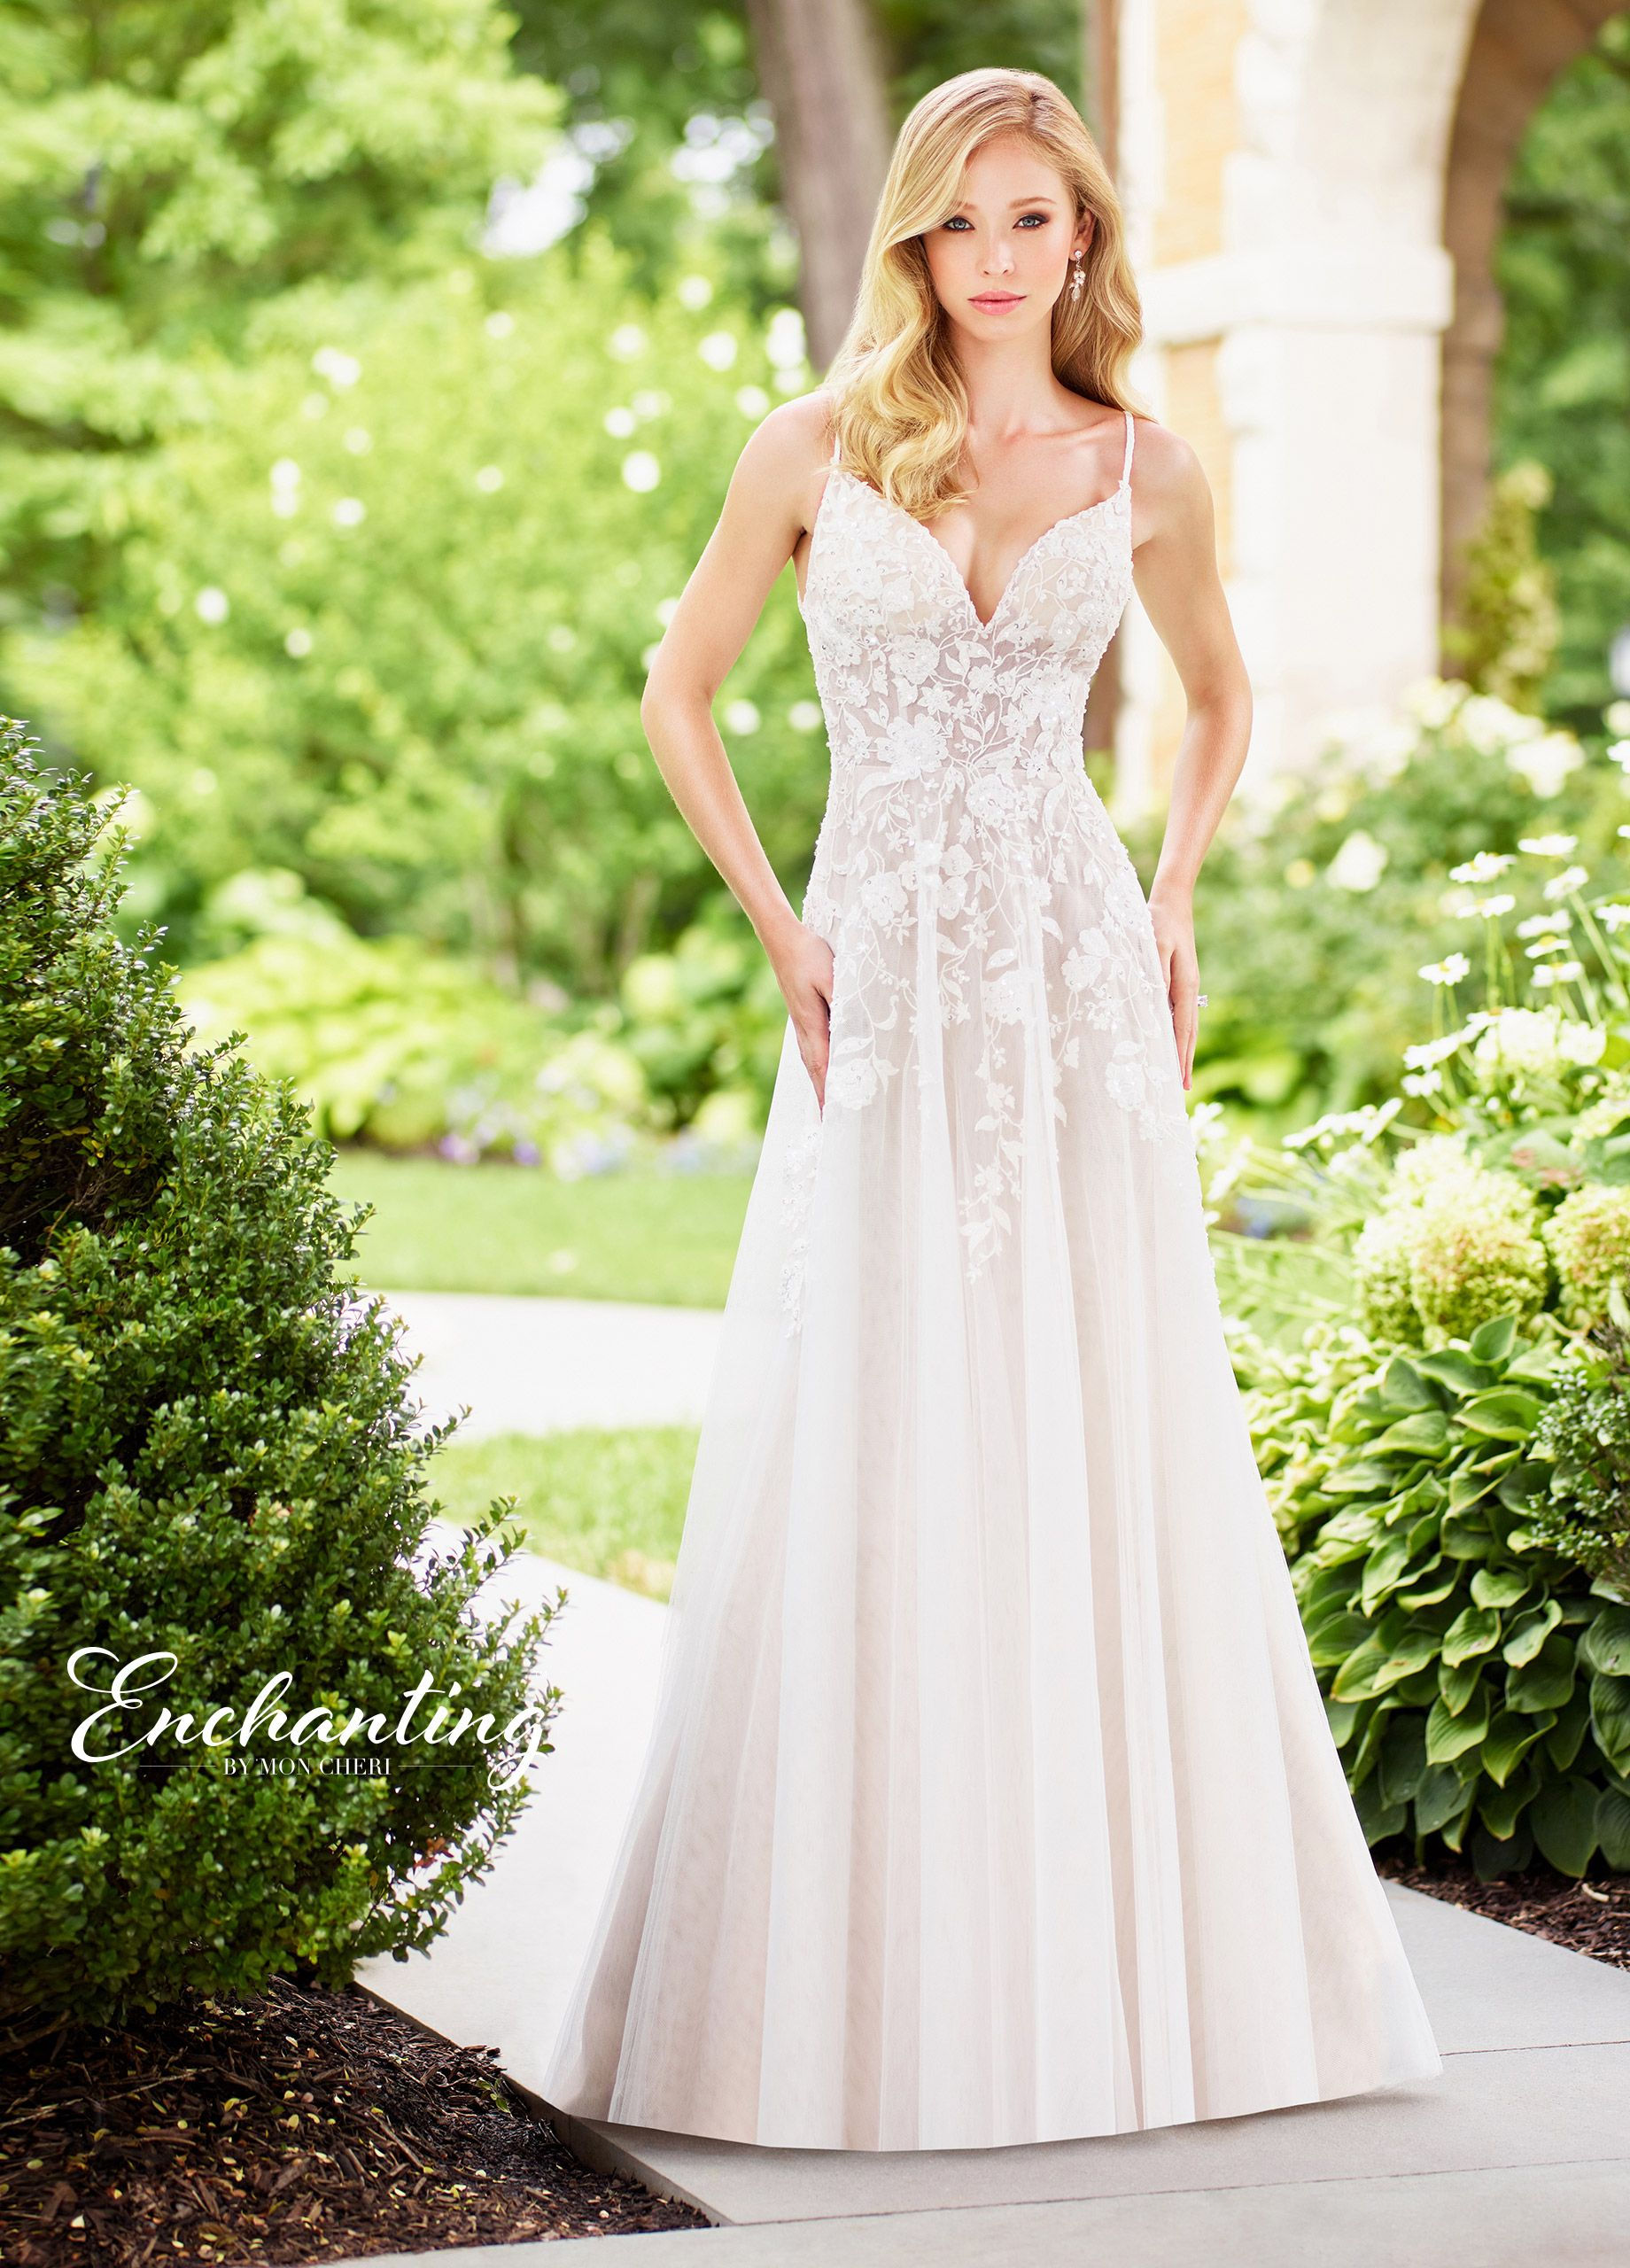 Tulle Sequin Lace A Line Wedding Dress With A Dropped Waist